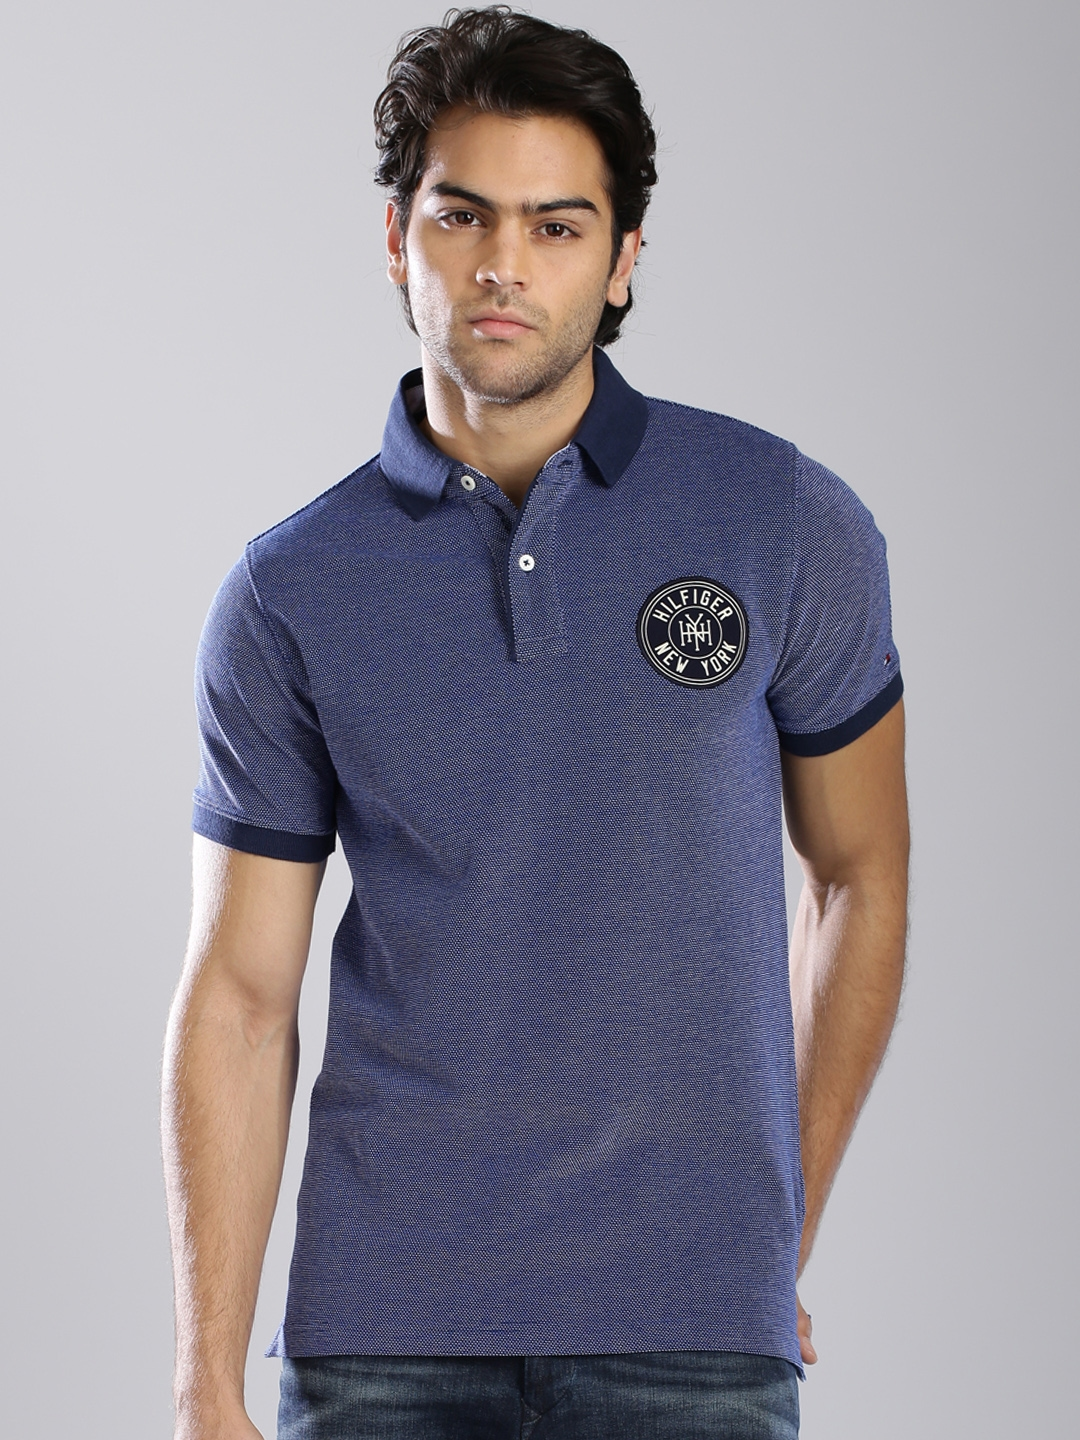 bf2bf0d3f8 Buy Tommy Hilfiger Navy Venice Polo T Shirt - Tshirts for Men ...